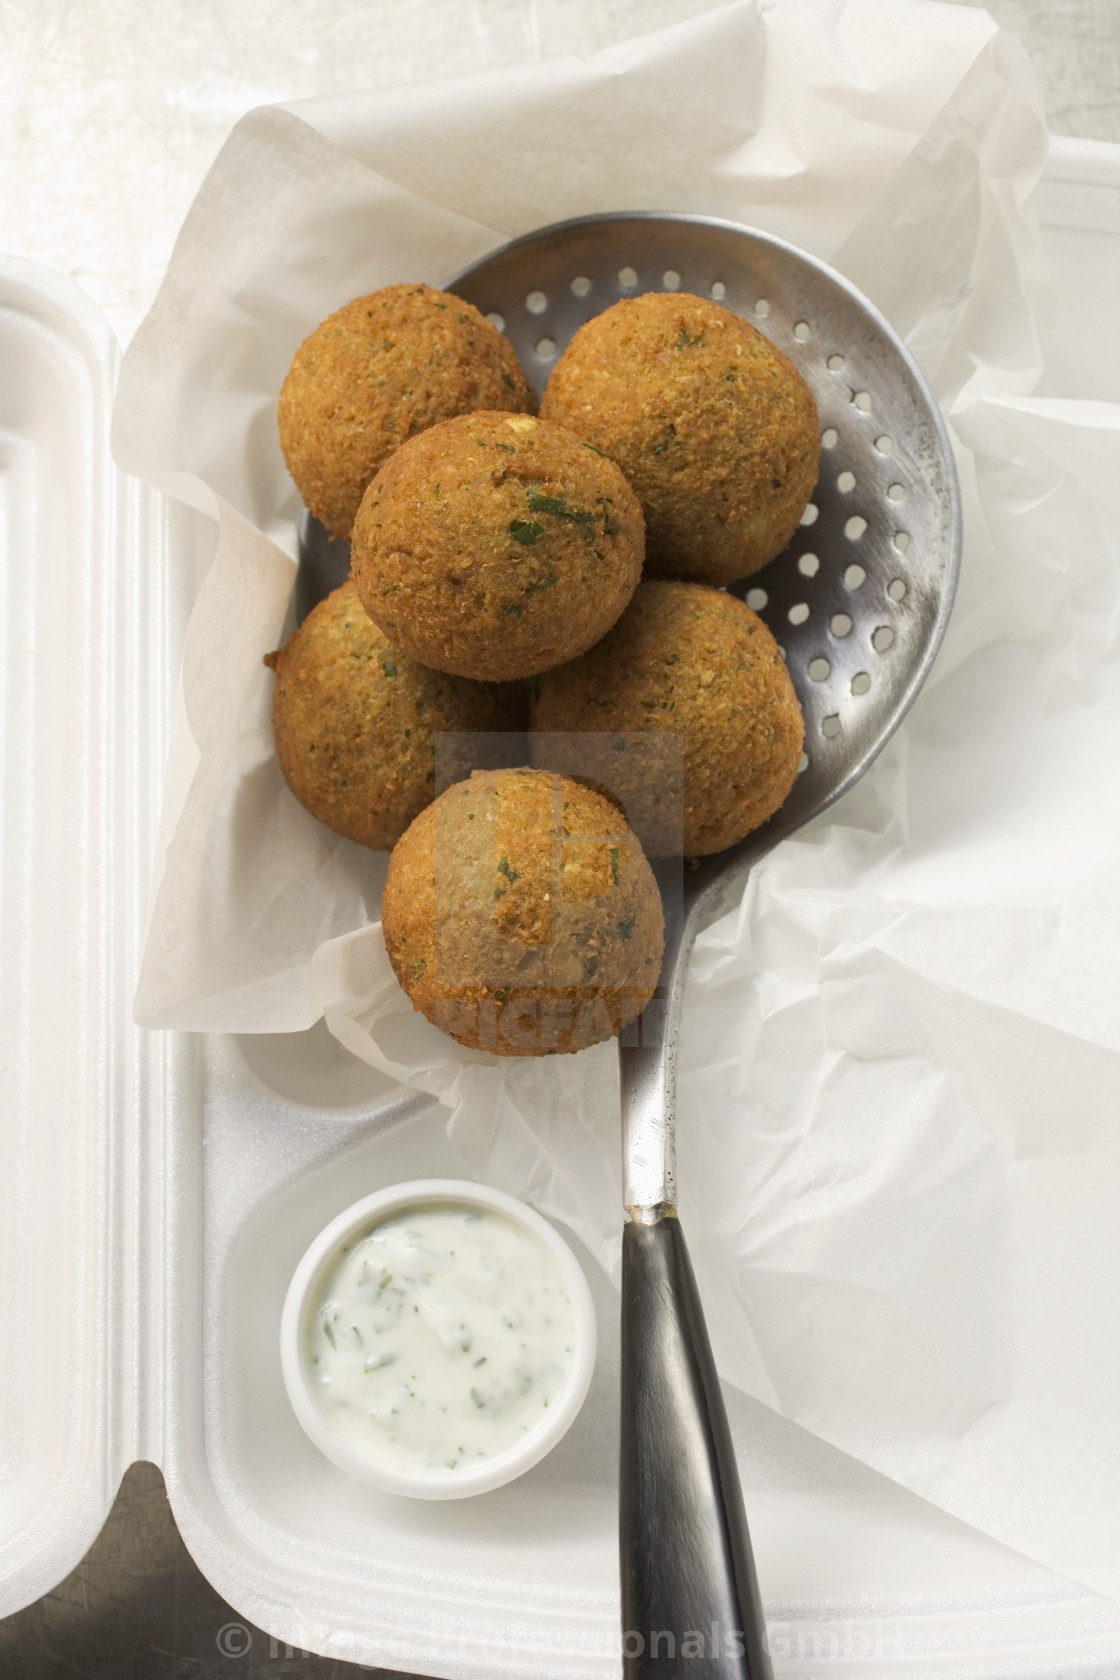 """""""Falafel (chick-pea balls) with yoghurt dip in lunch box"""" stock image"""